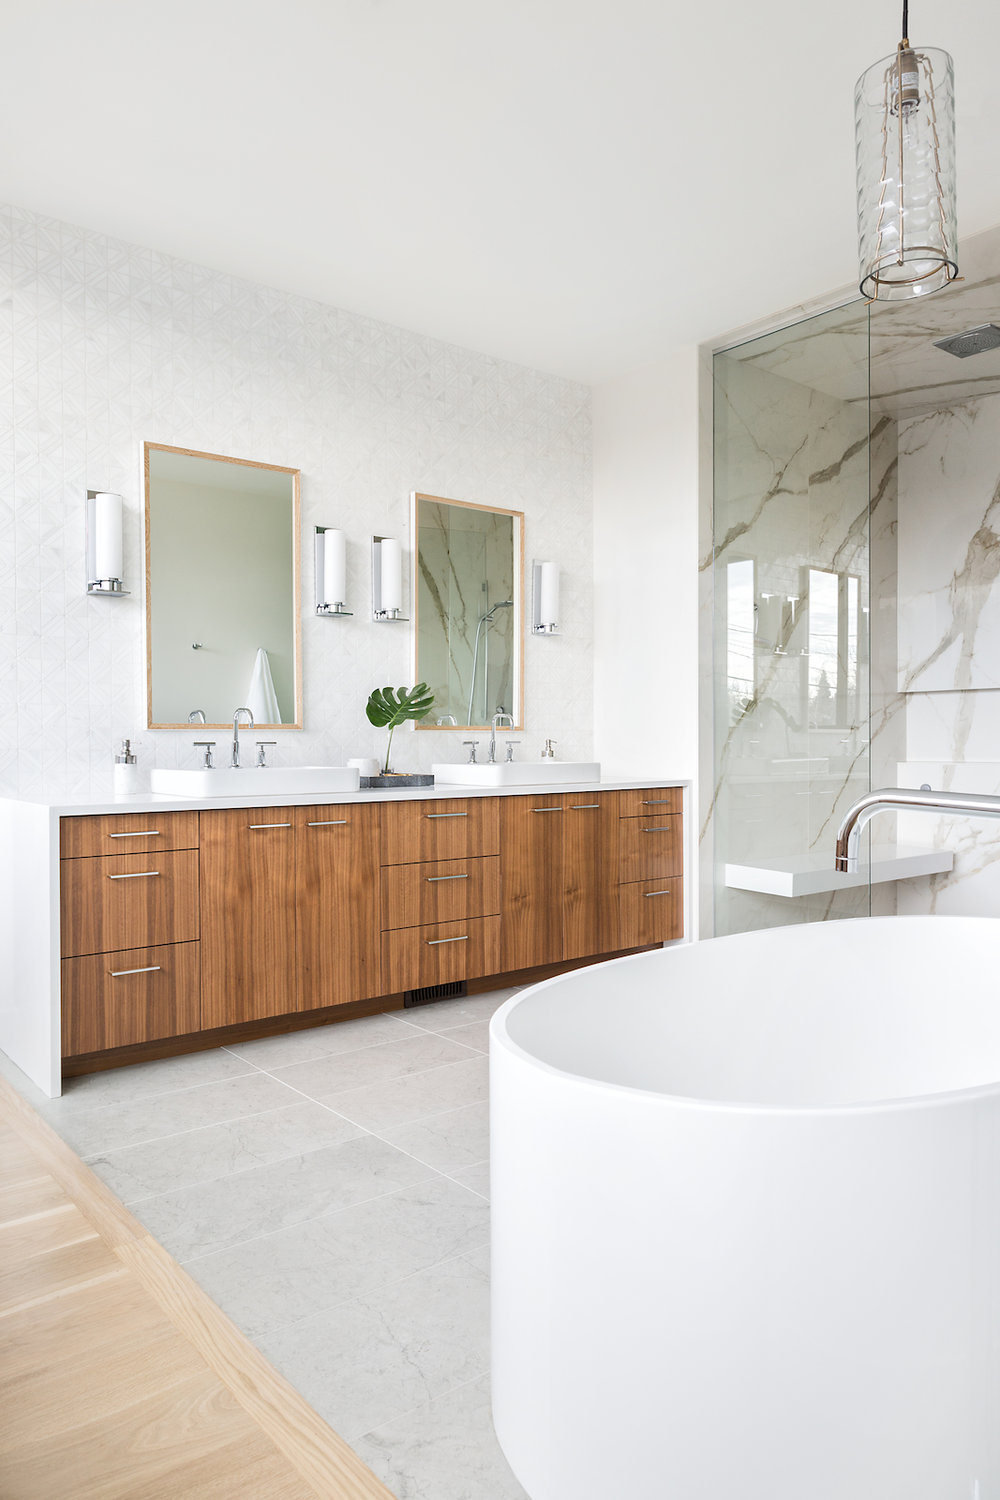 Nyla Free Designs Inc Elbow Park Modern Master Ensuite Reveal